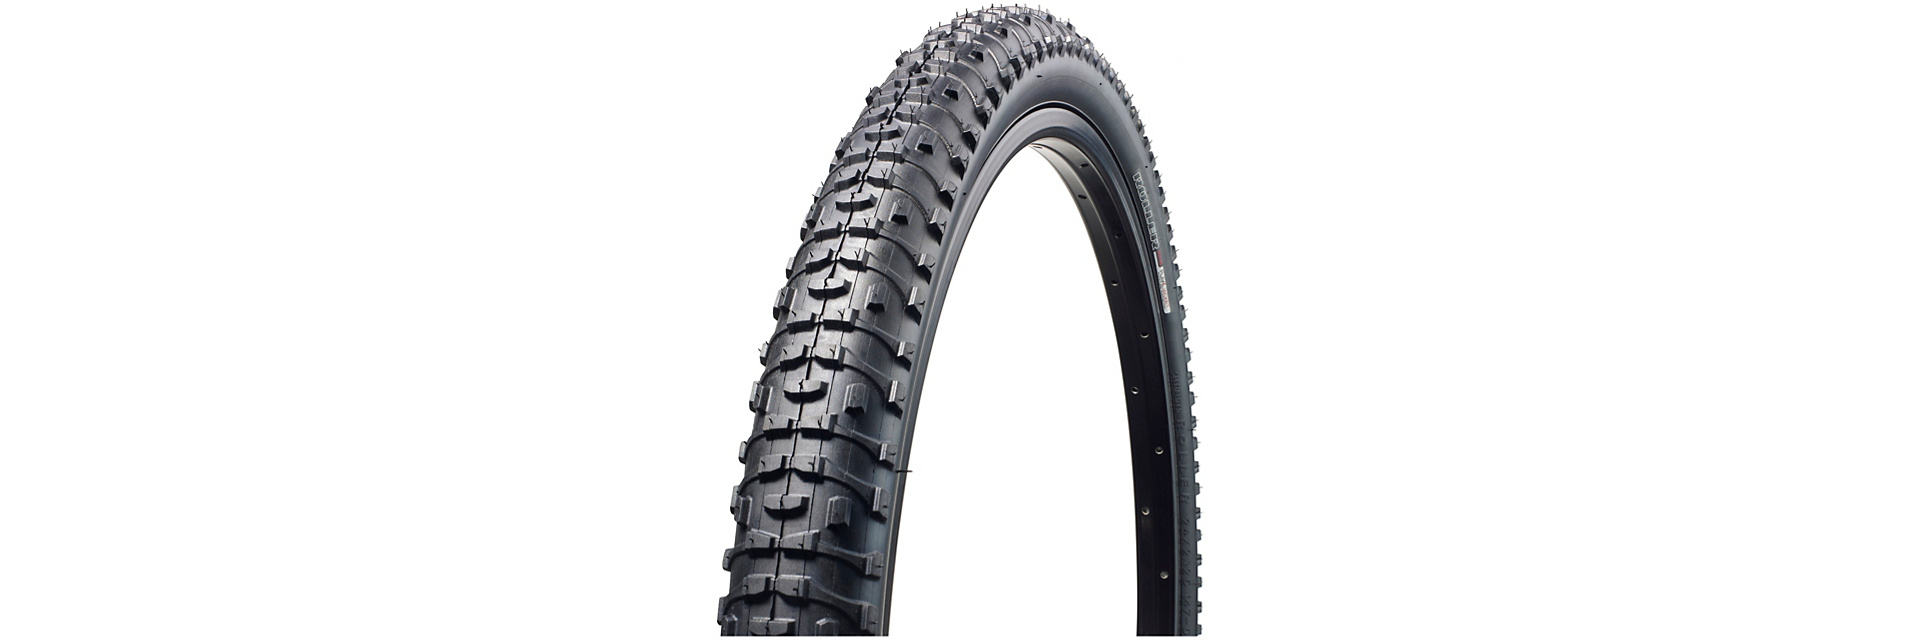 Specialized ROLLER TIRE 16 X 2.125